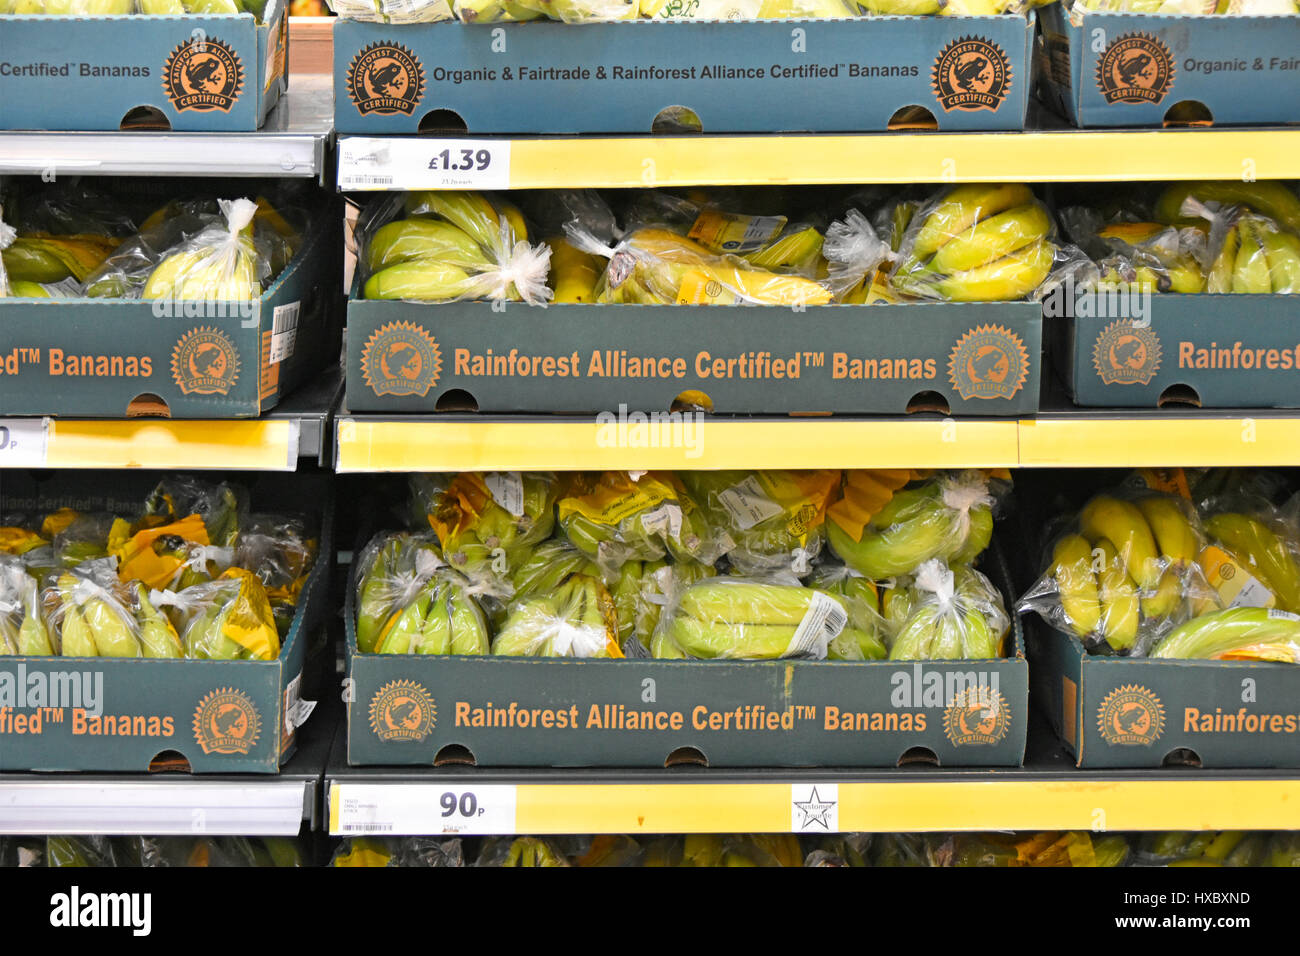 Organic & Fair Trade & Rainforest Alliance Certified Bananas and logo in plastic bags in cardboard boxes - Stock Image